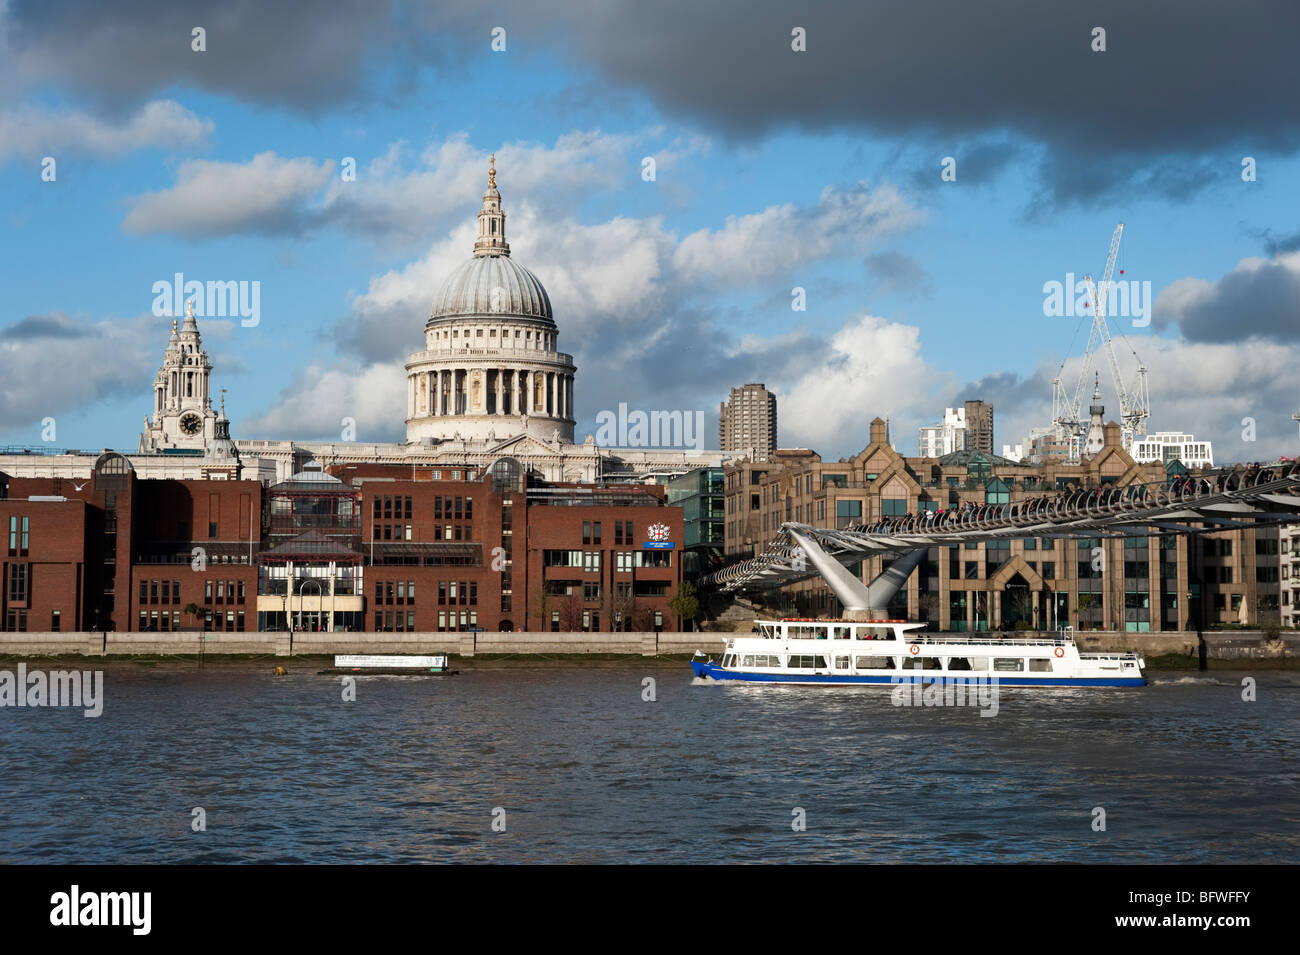 Tour boat on the river Thames passing St Paul's Cathedral, London, England, UK Stock Photo